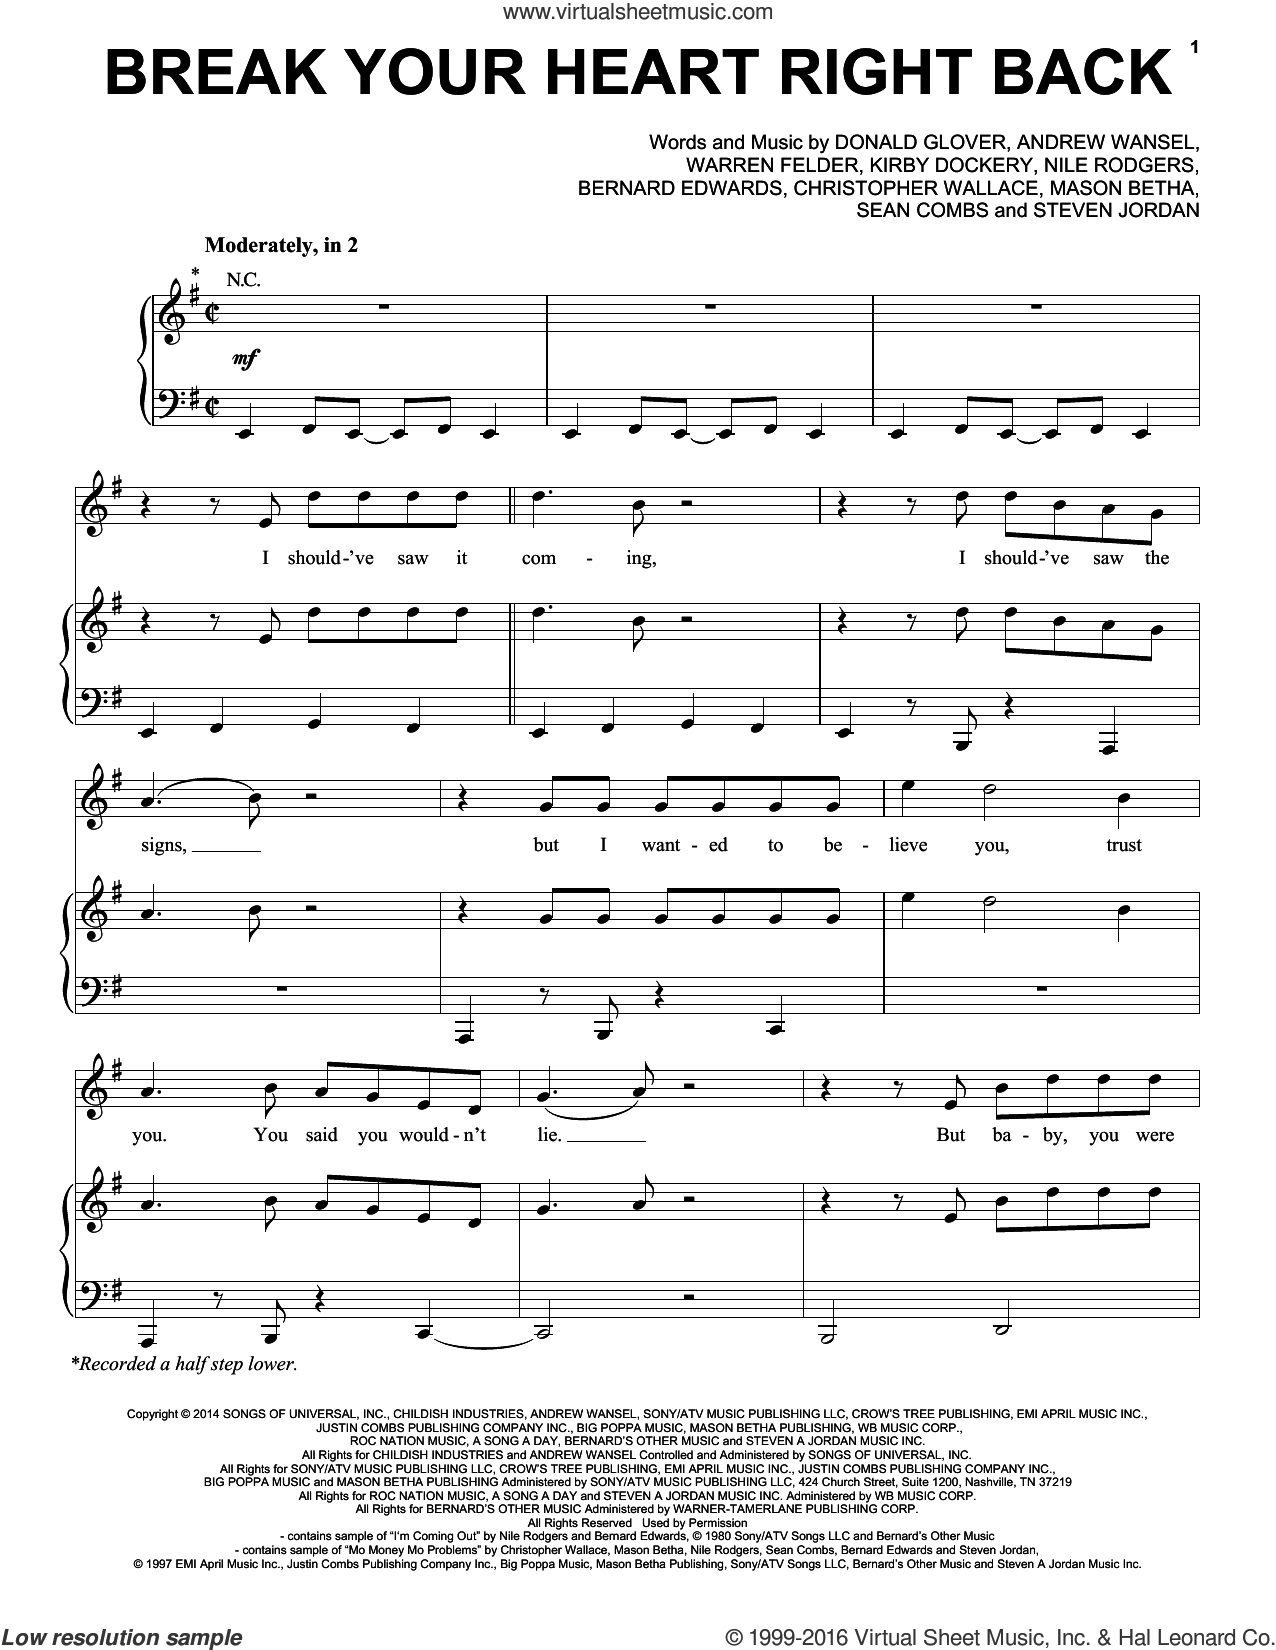 Break Your Heart Right Back sheet music for voice, piano or guitar by Ariana Grande, Andrew Wansel, Bernard Edwards, Christopher Wallace, Donald Glover, Kirby Dockery, Mason Betha, Nile Rodgers, Sean Combs, Steve Jordan and Warren Felder, intermediate skill level